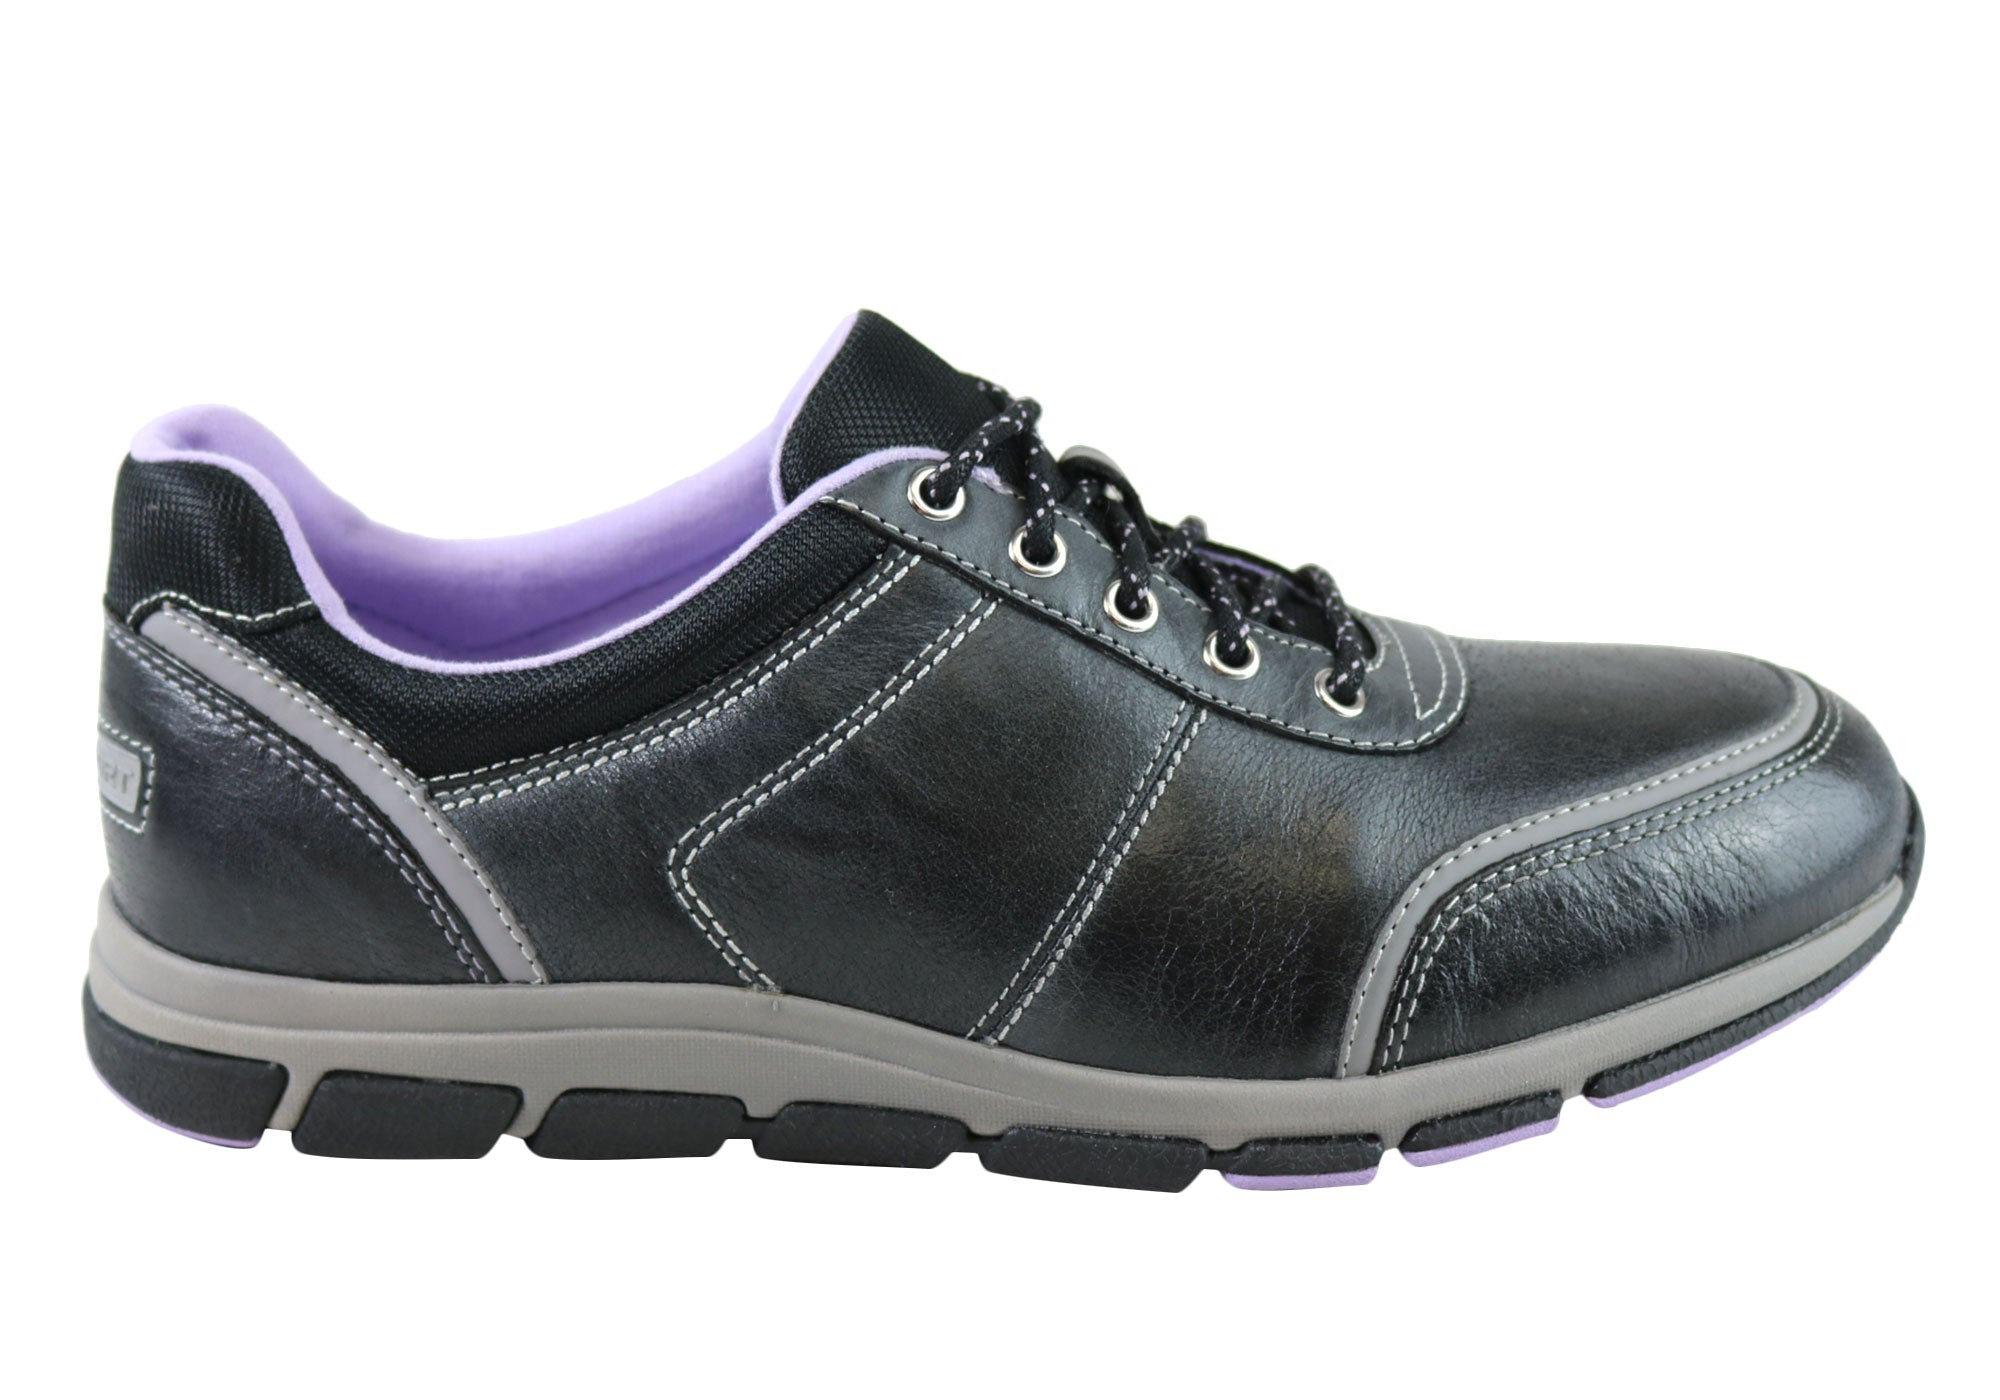 rockport shoes geelong vic postcodes nederland 966201